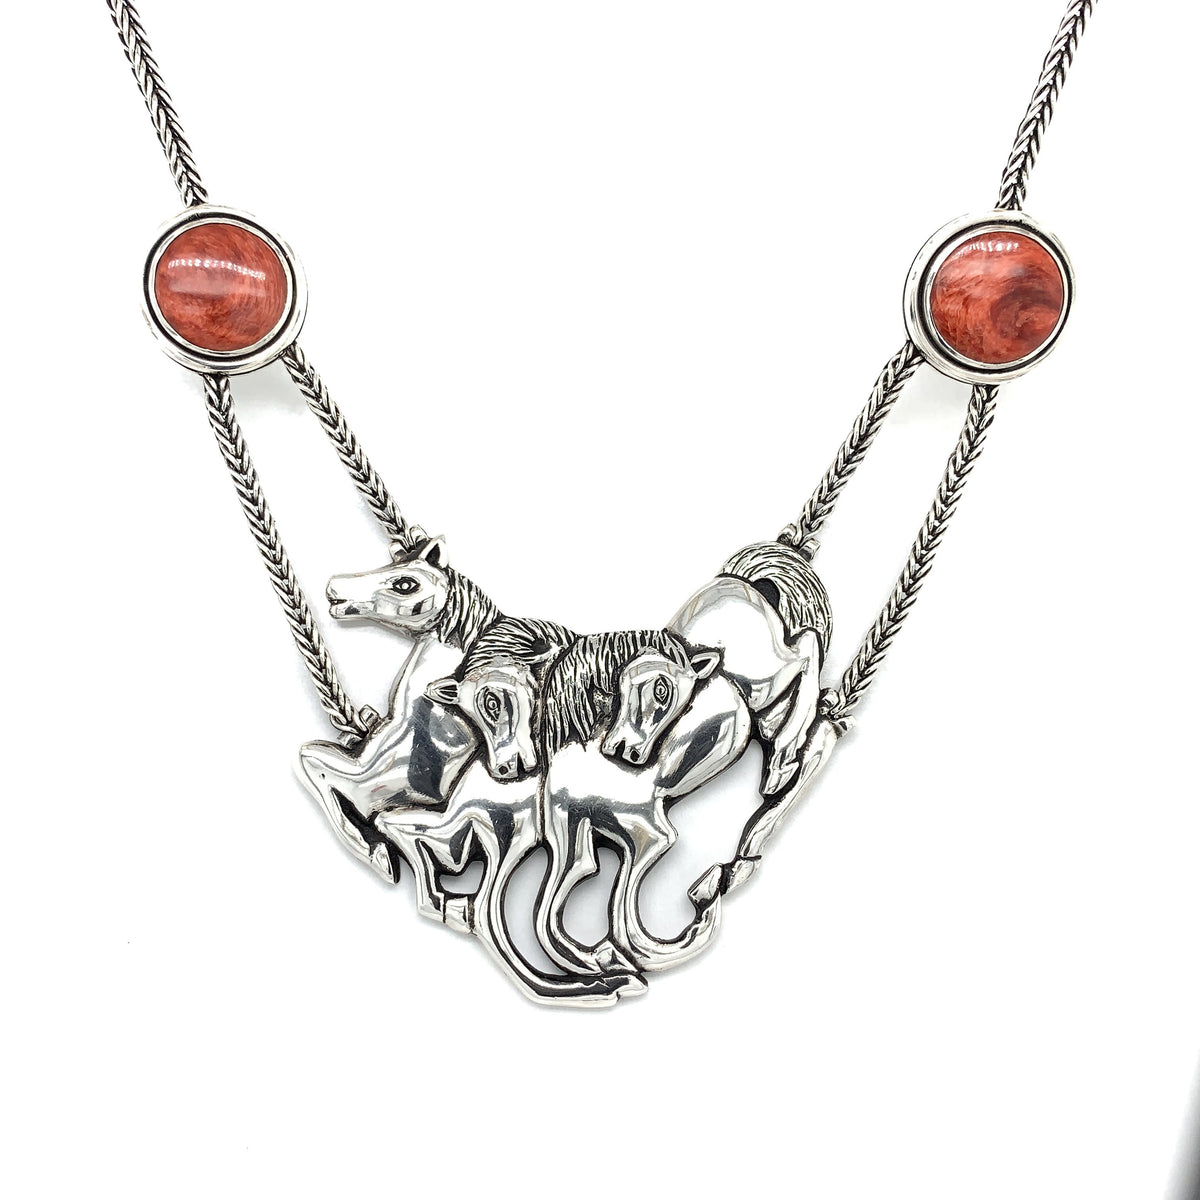 Three Horses Sterling Silver Necklace - Qinti - The Peruvian Shop